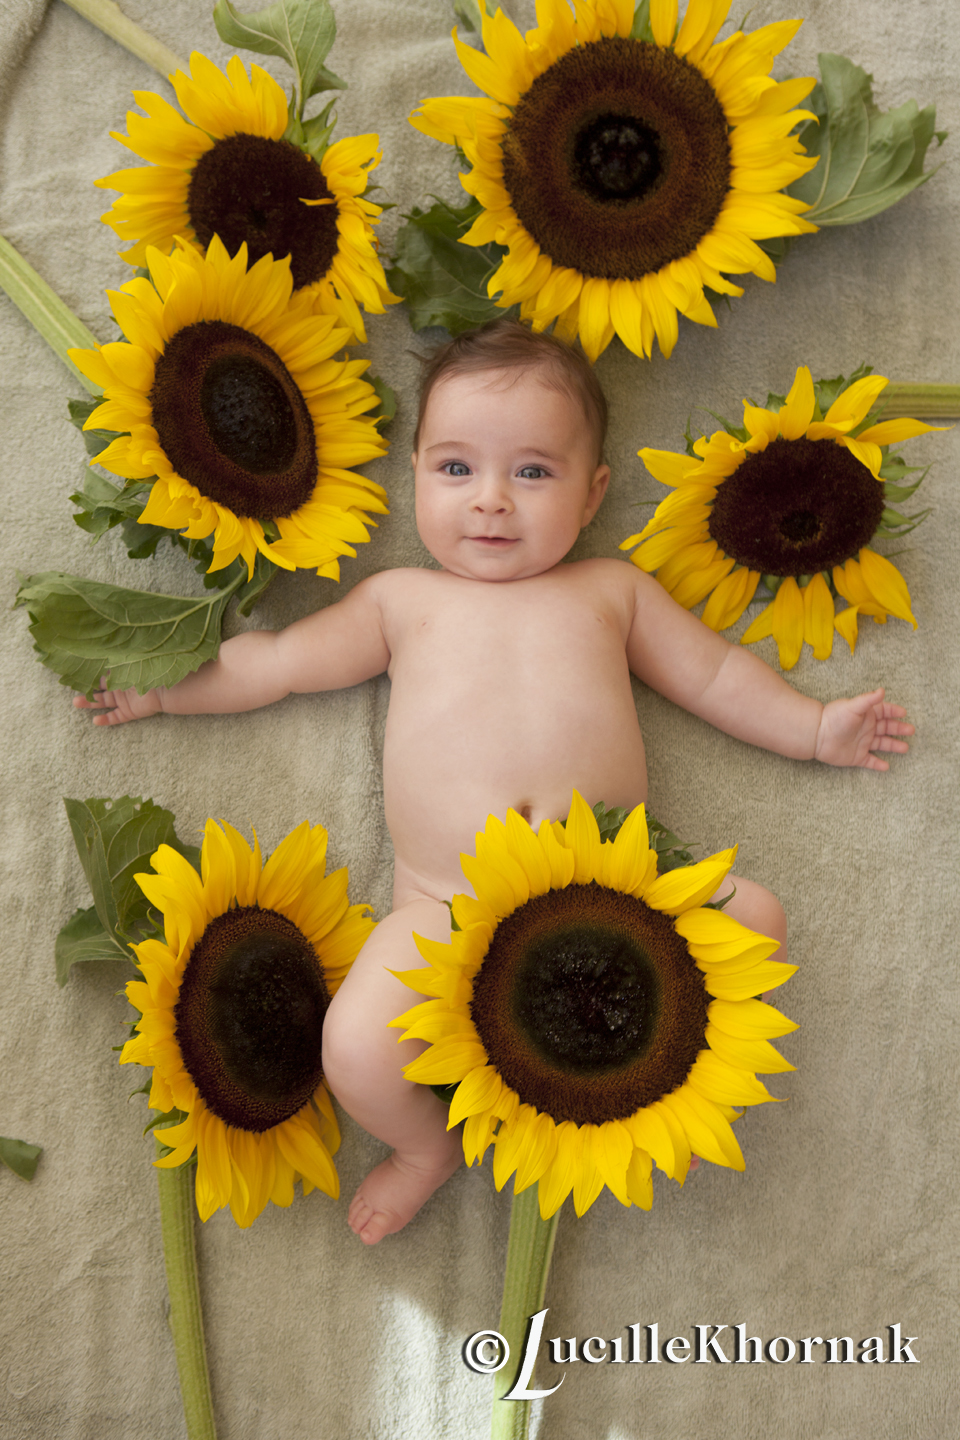 LKPhotography Sunflower Baby